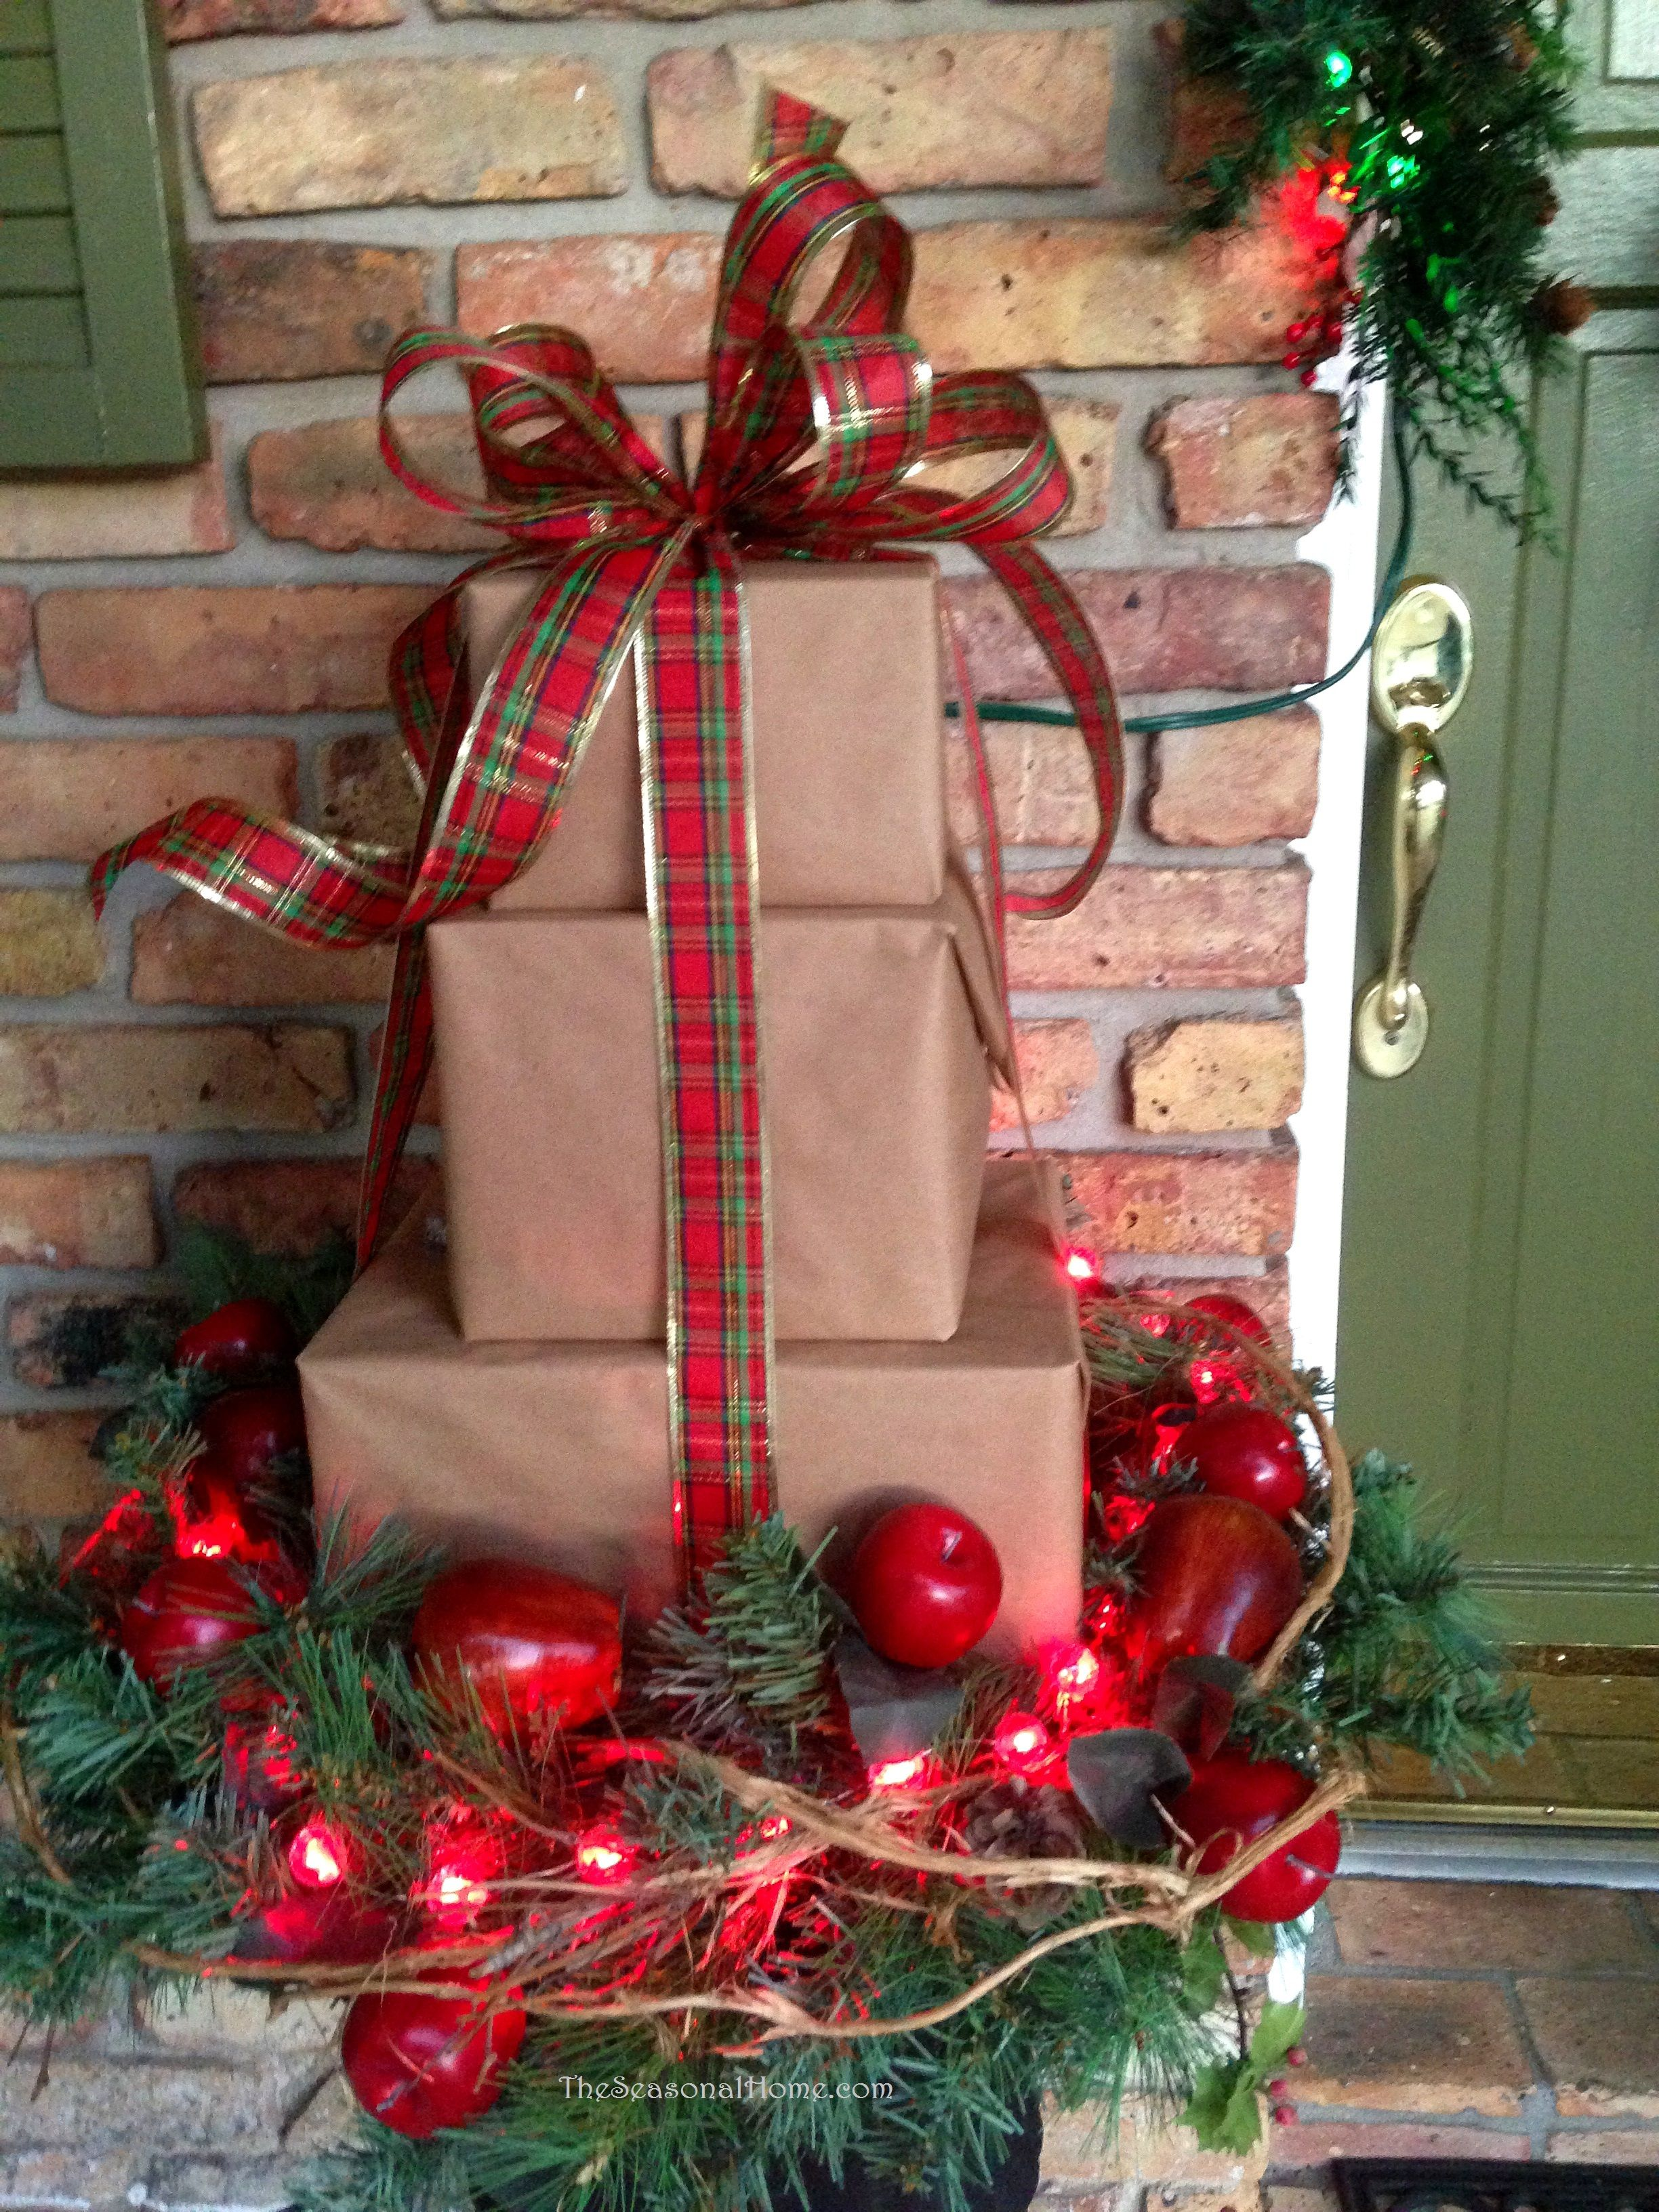 Creative outdoor christmas decorations - S_front Porch_packages Stack 2